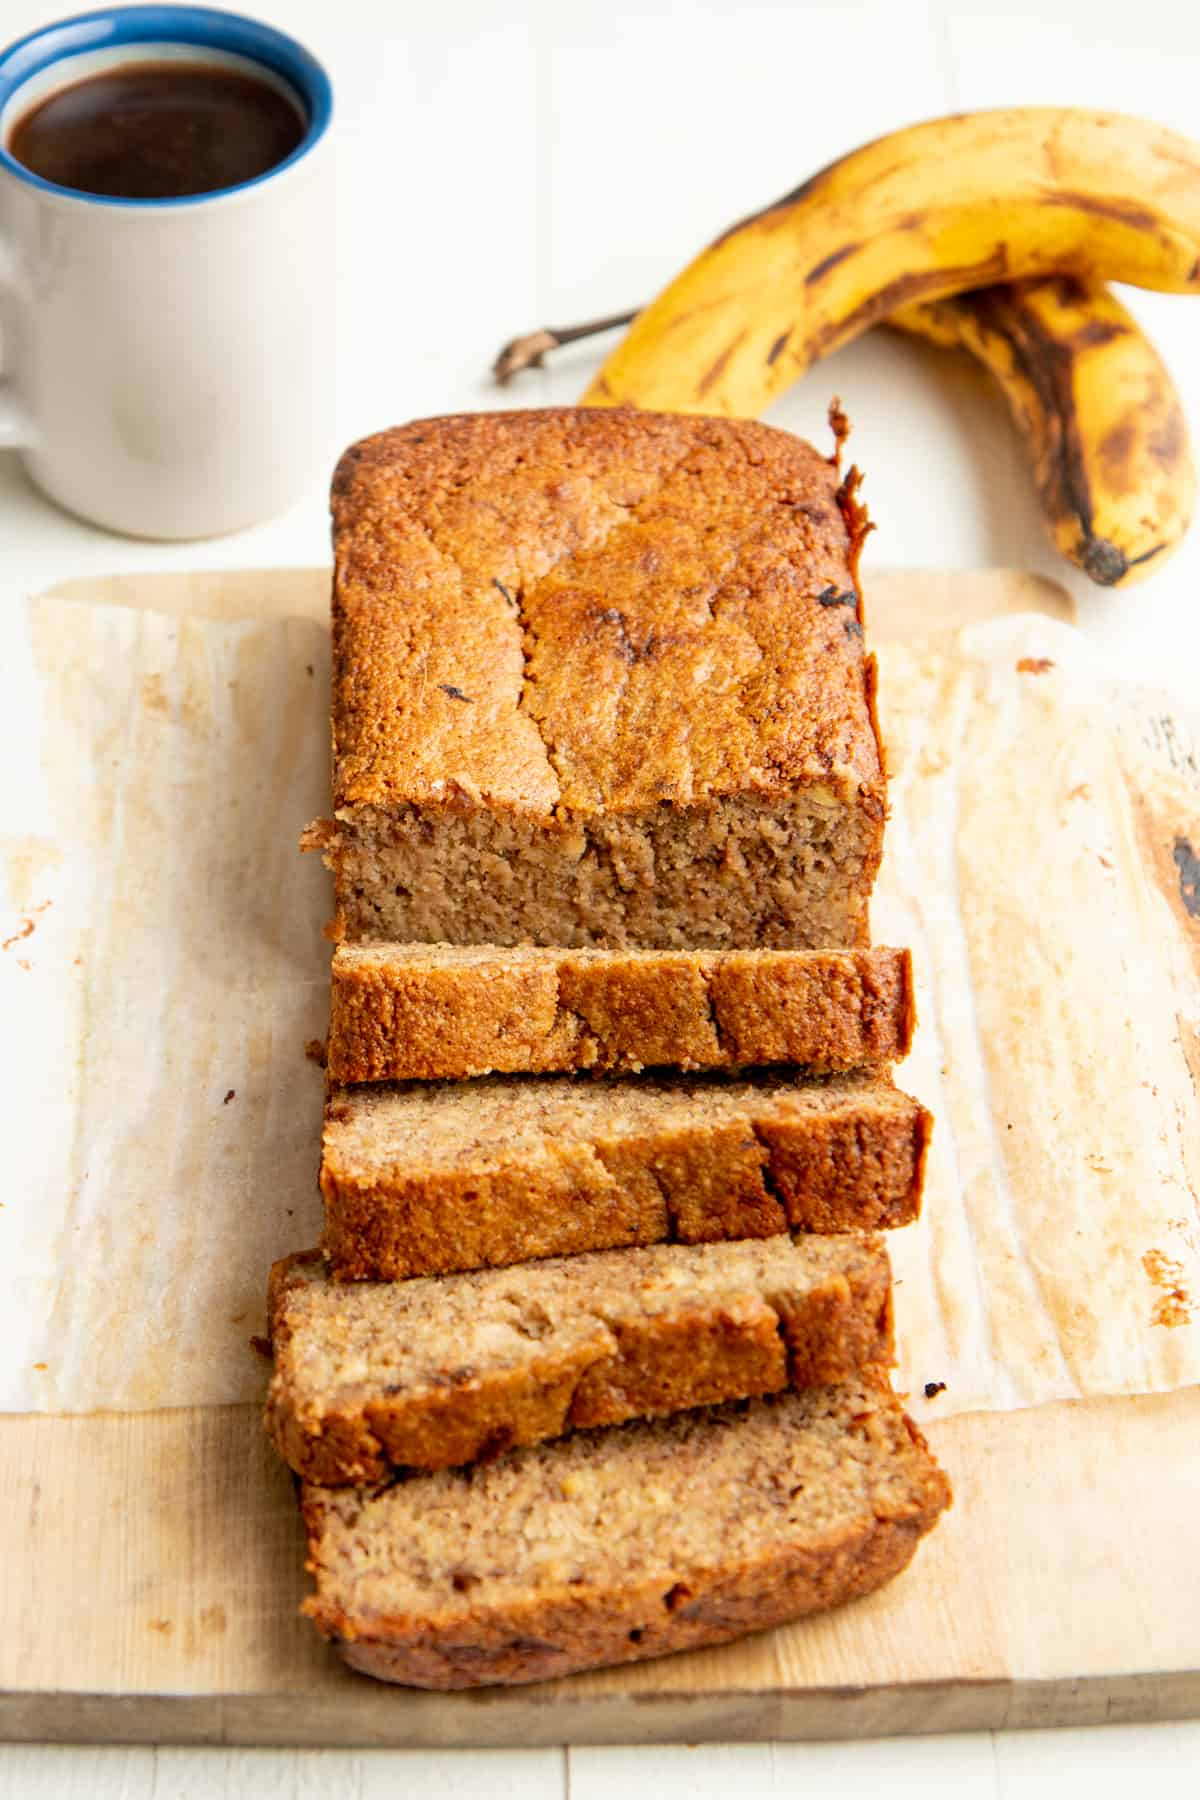 A loaf of almond flour banana bread is cut into slices.